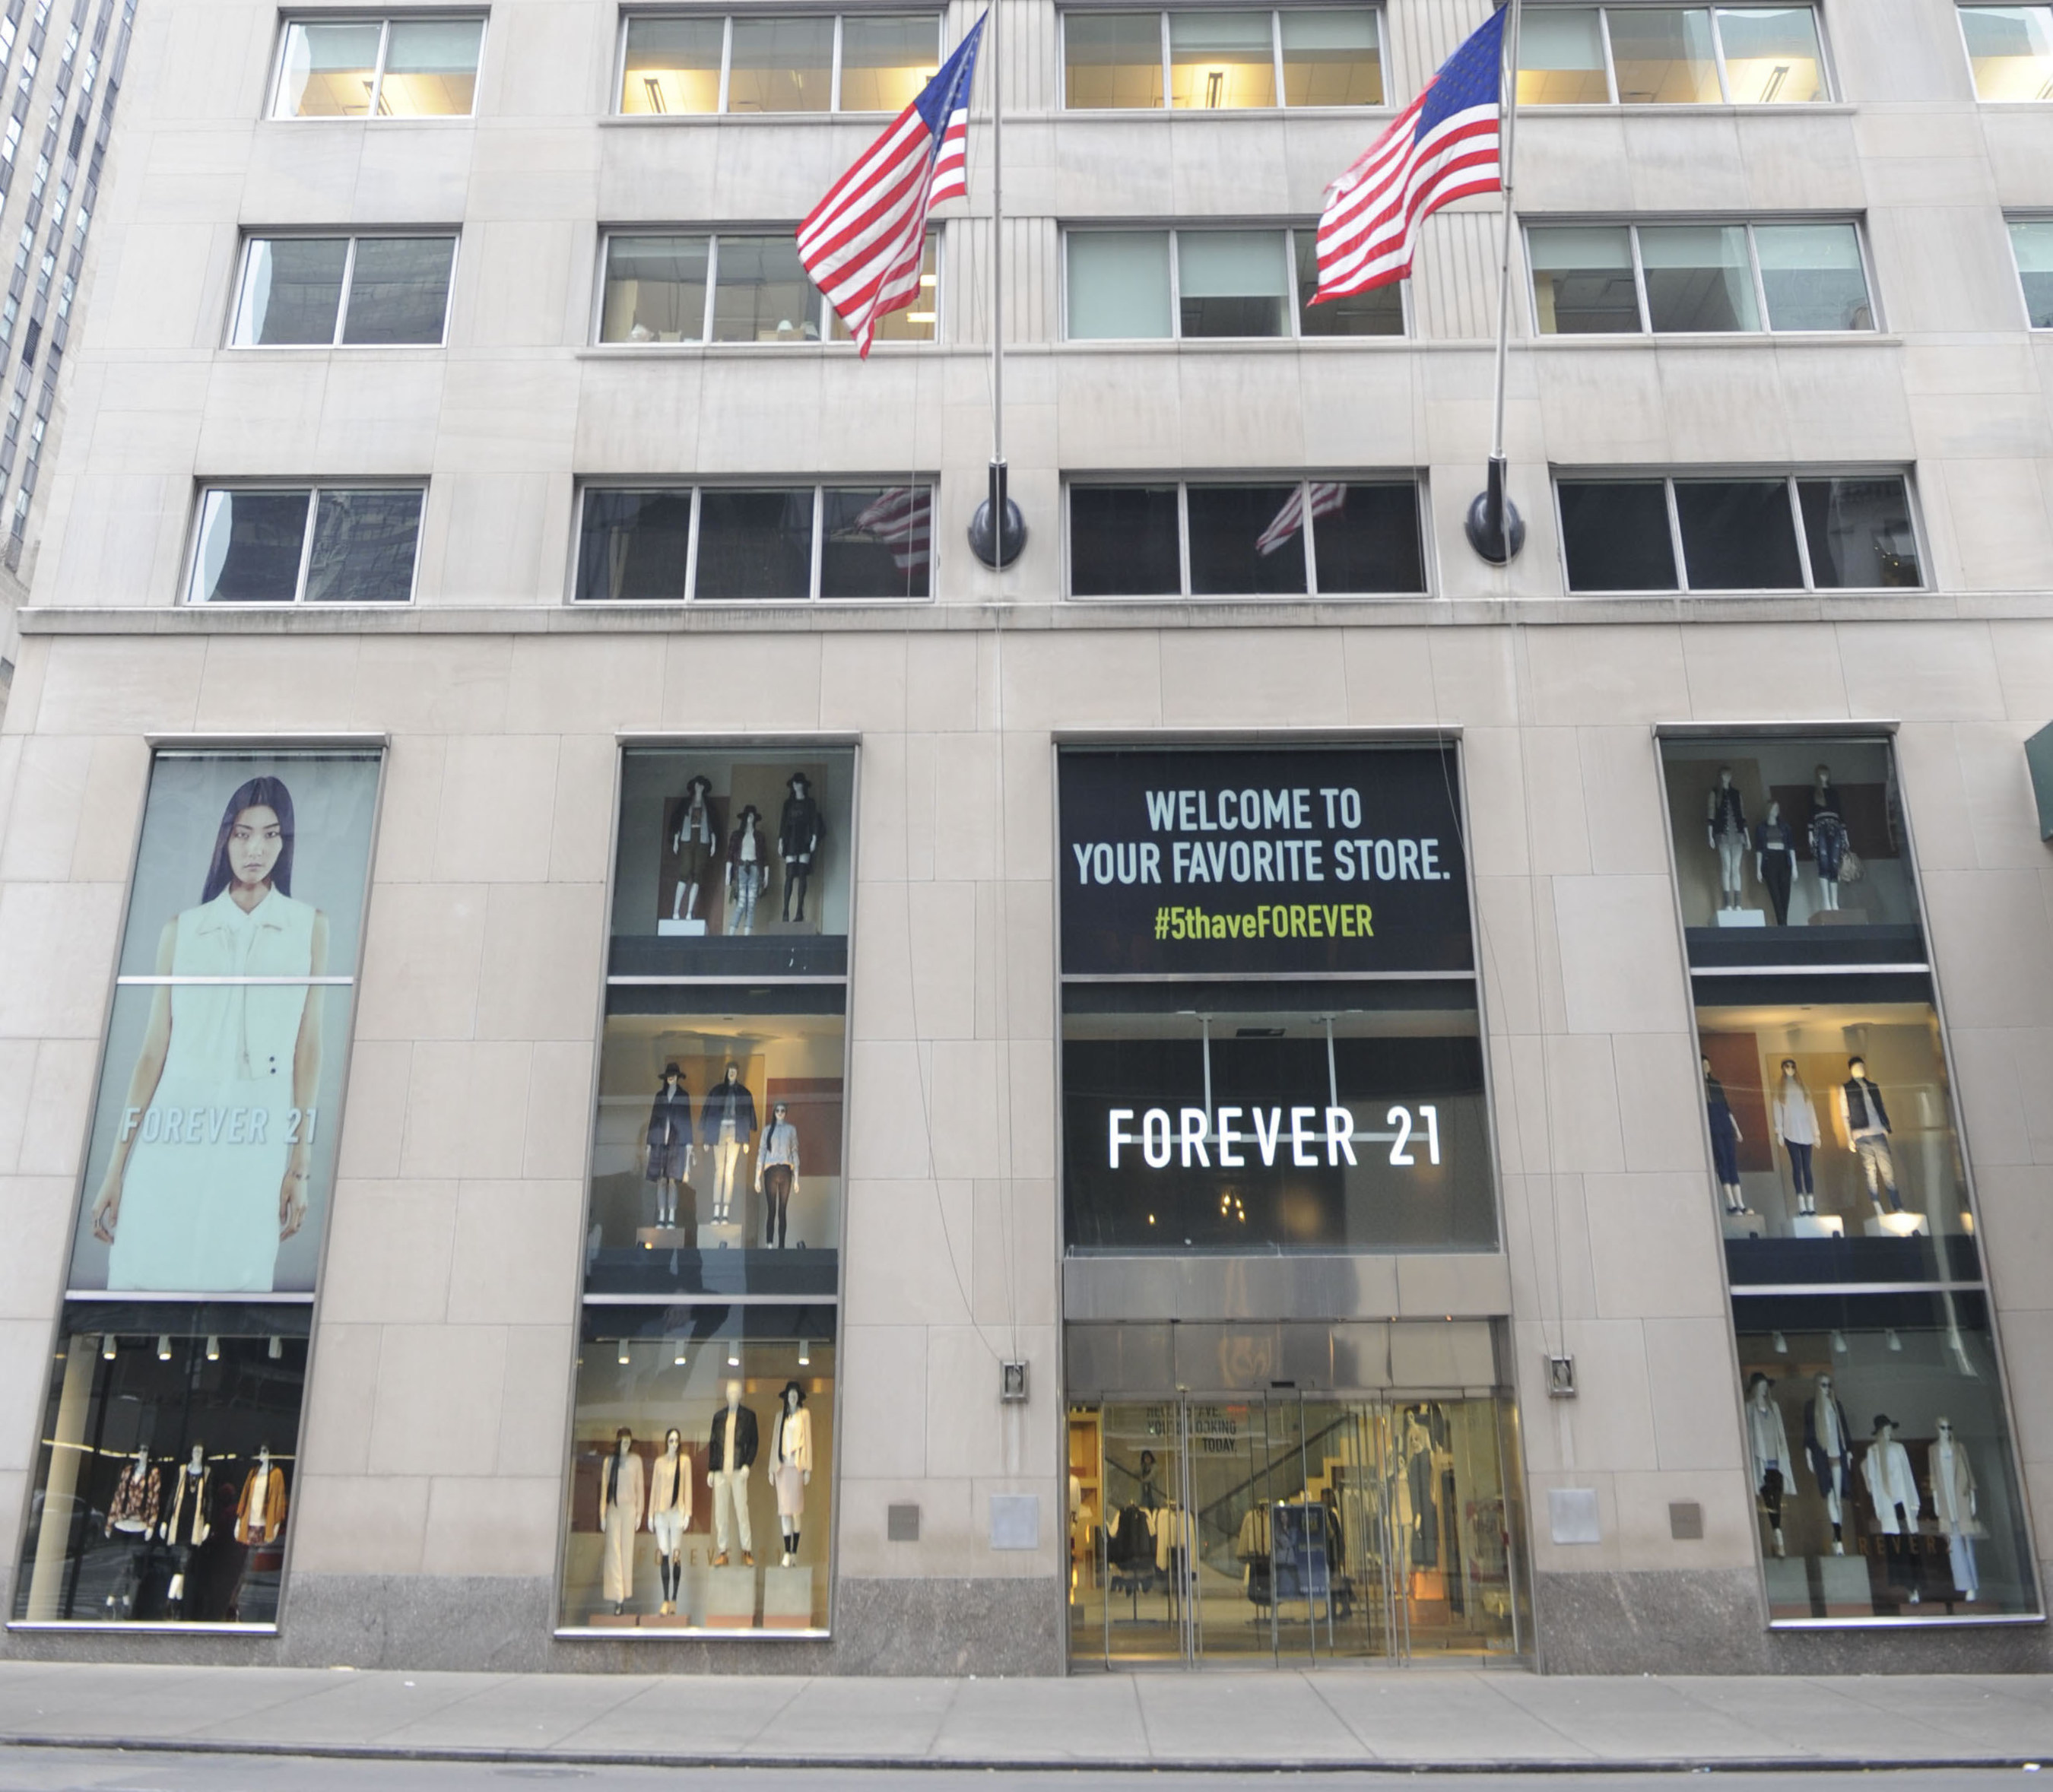 Forever 21 Fifth Avenue Exterior Shot in New York City, New York. Photo Credit: Craig Barritt